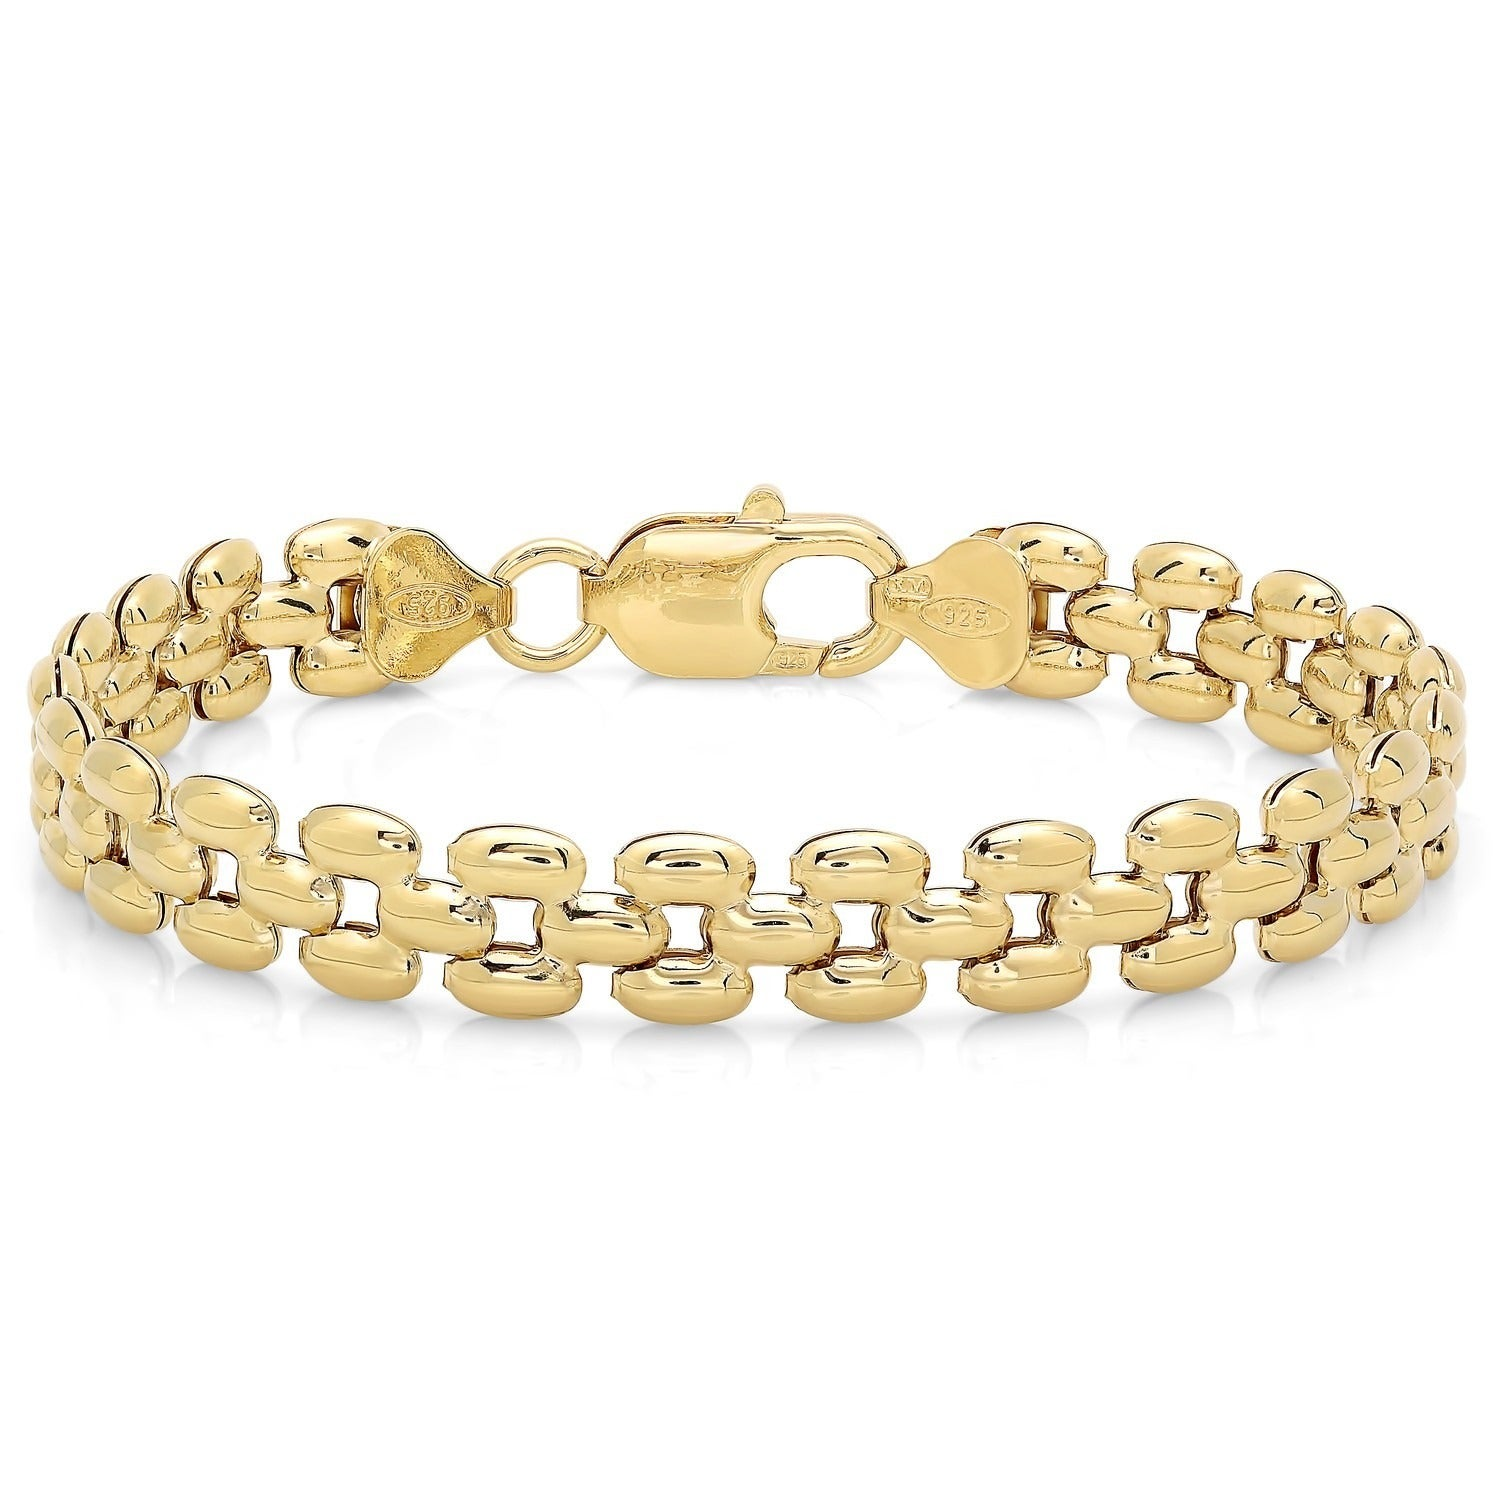 black gold shop royal bracelet panther kollektion noxain